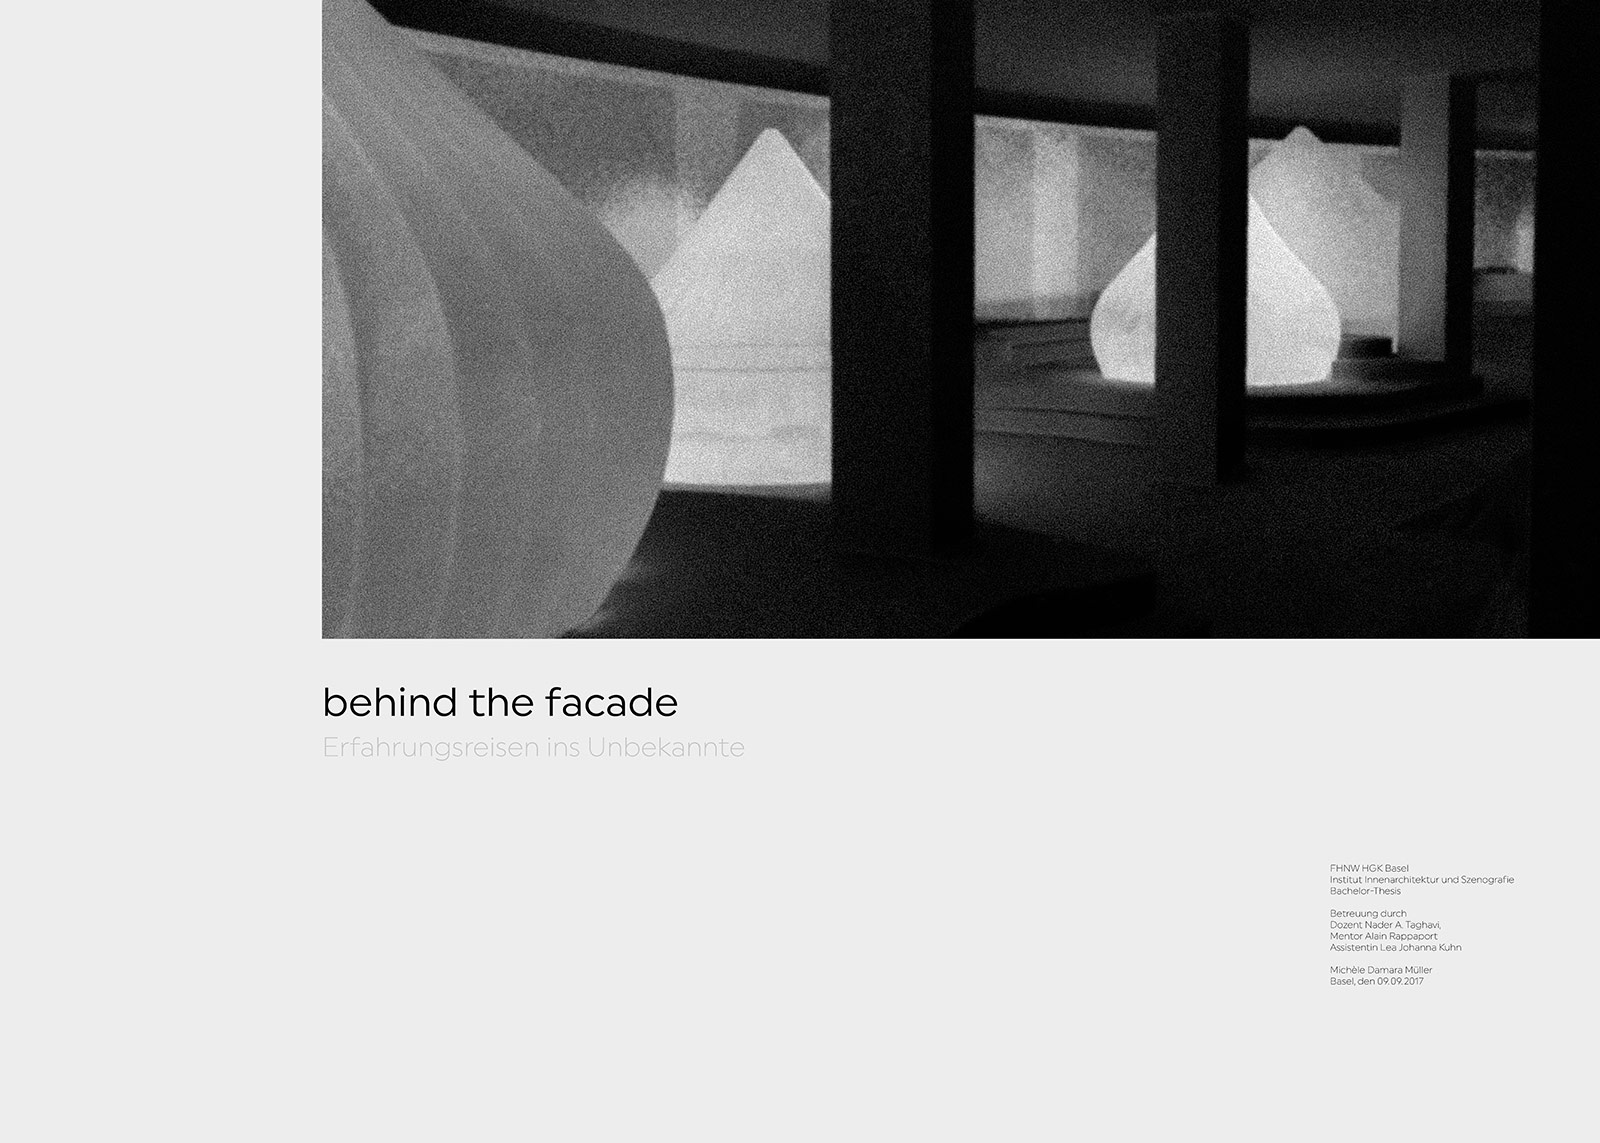 Michèle Müller – behind the facade